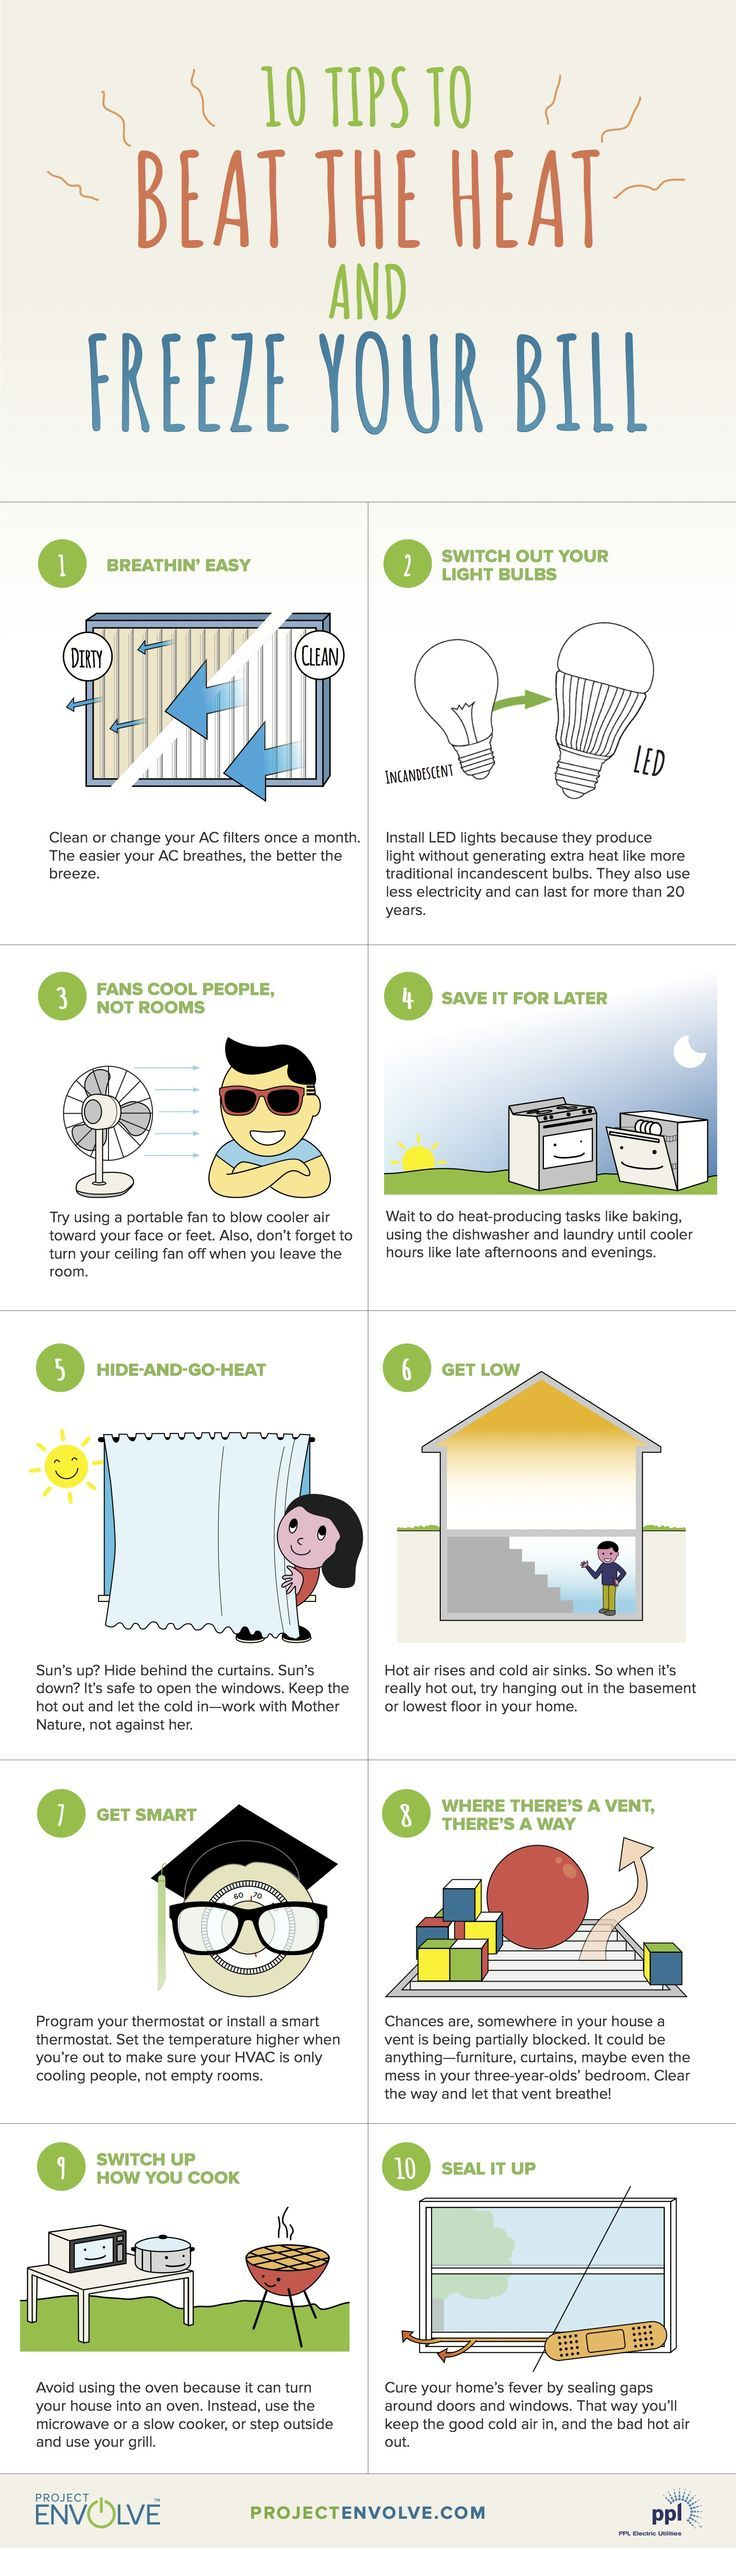 Best Ways To Heat Your Home 164 best create a more energy-efficient home images on pinterest